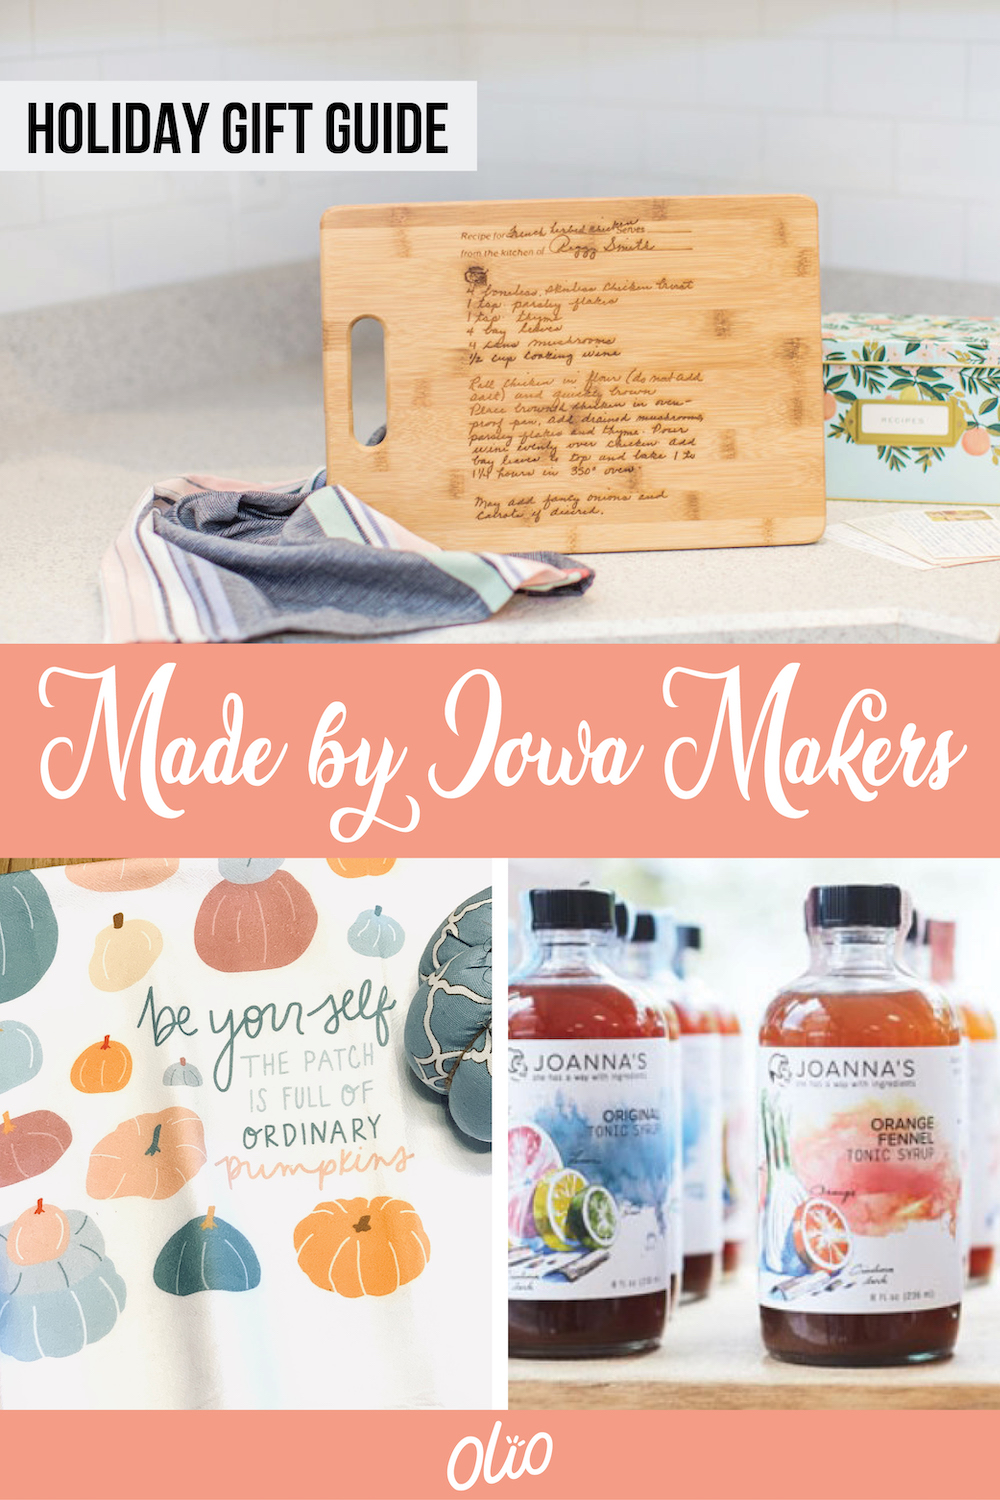 Shop local this season with unique made-in-Iowa gifts! With Travel Iowa's selection of Midwestern gifts there's something for everyone on your holiday list. #Iowa #TravelIowa #MadeInIowa